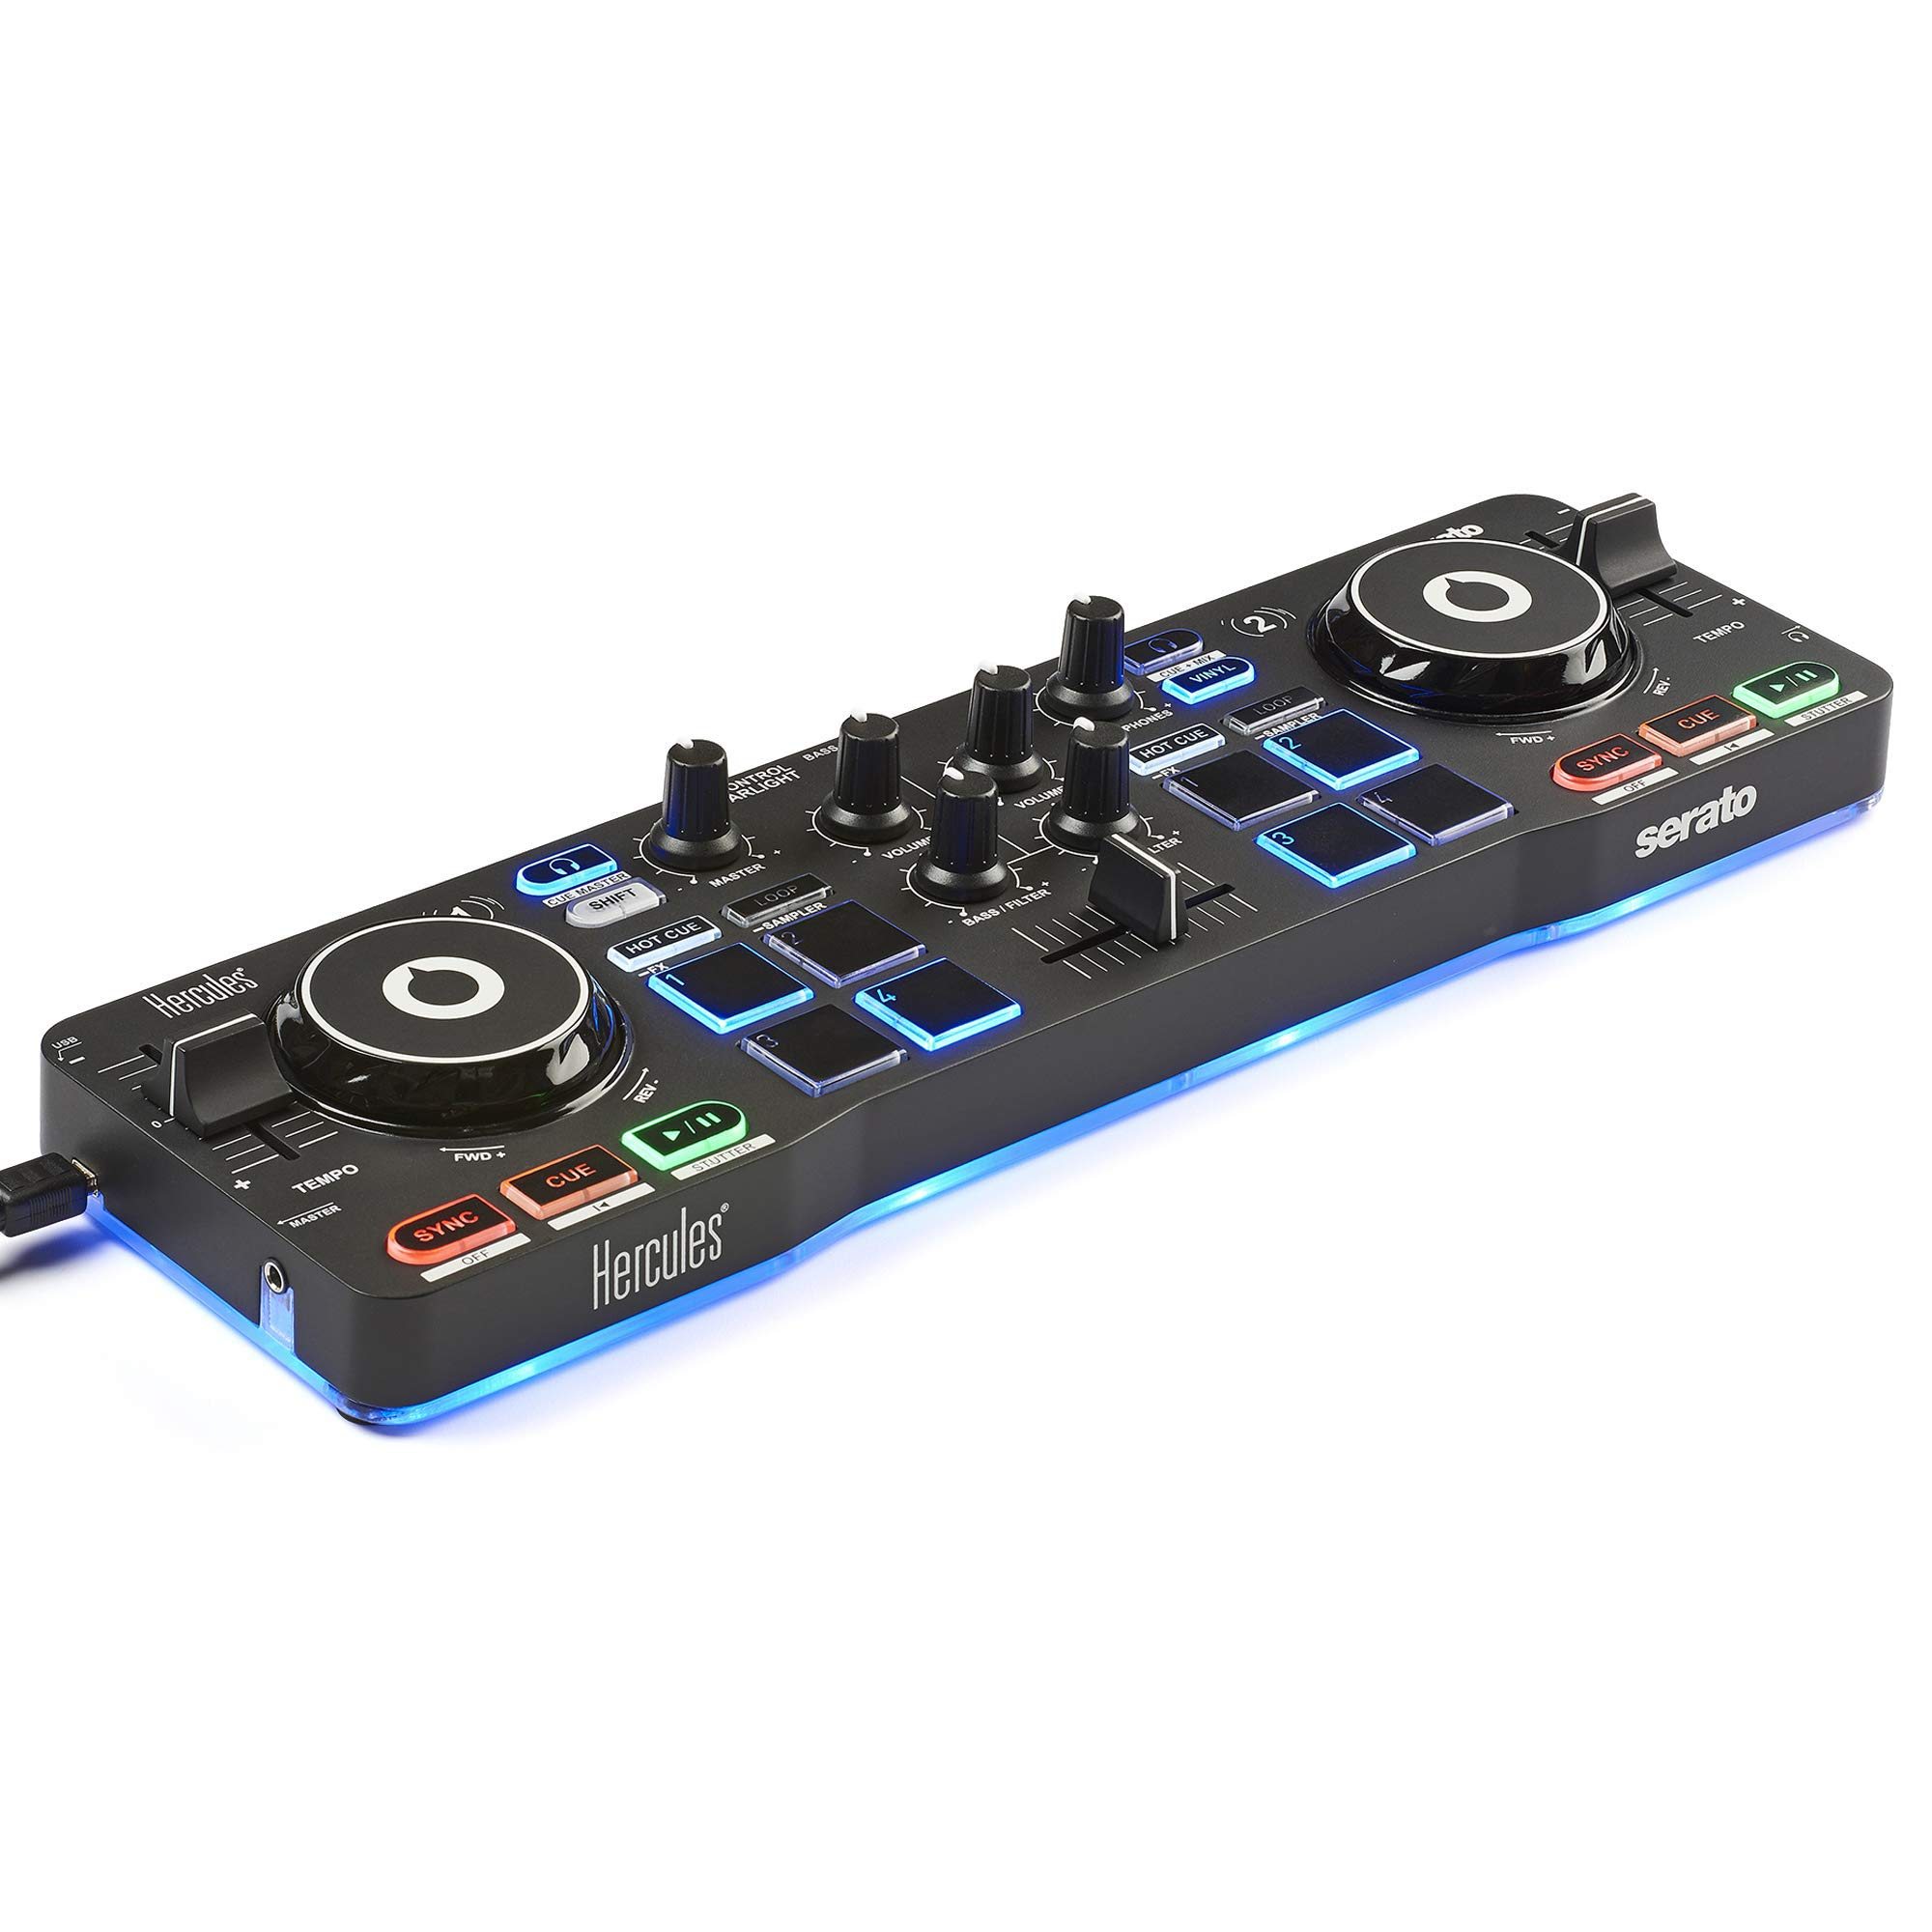 Hercules DJ DJControl Starlight | Pocket USB DJ Controller with Serato DJ Lite, Touch-Sensitive Jog Wheels, Built-in Sound Card and Built-in Light Show